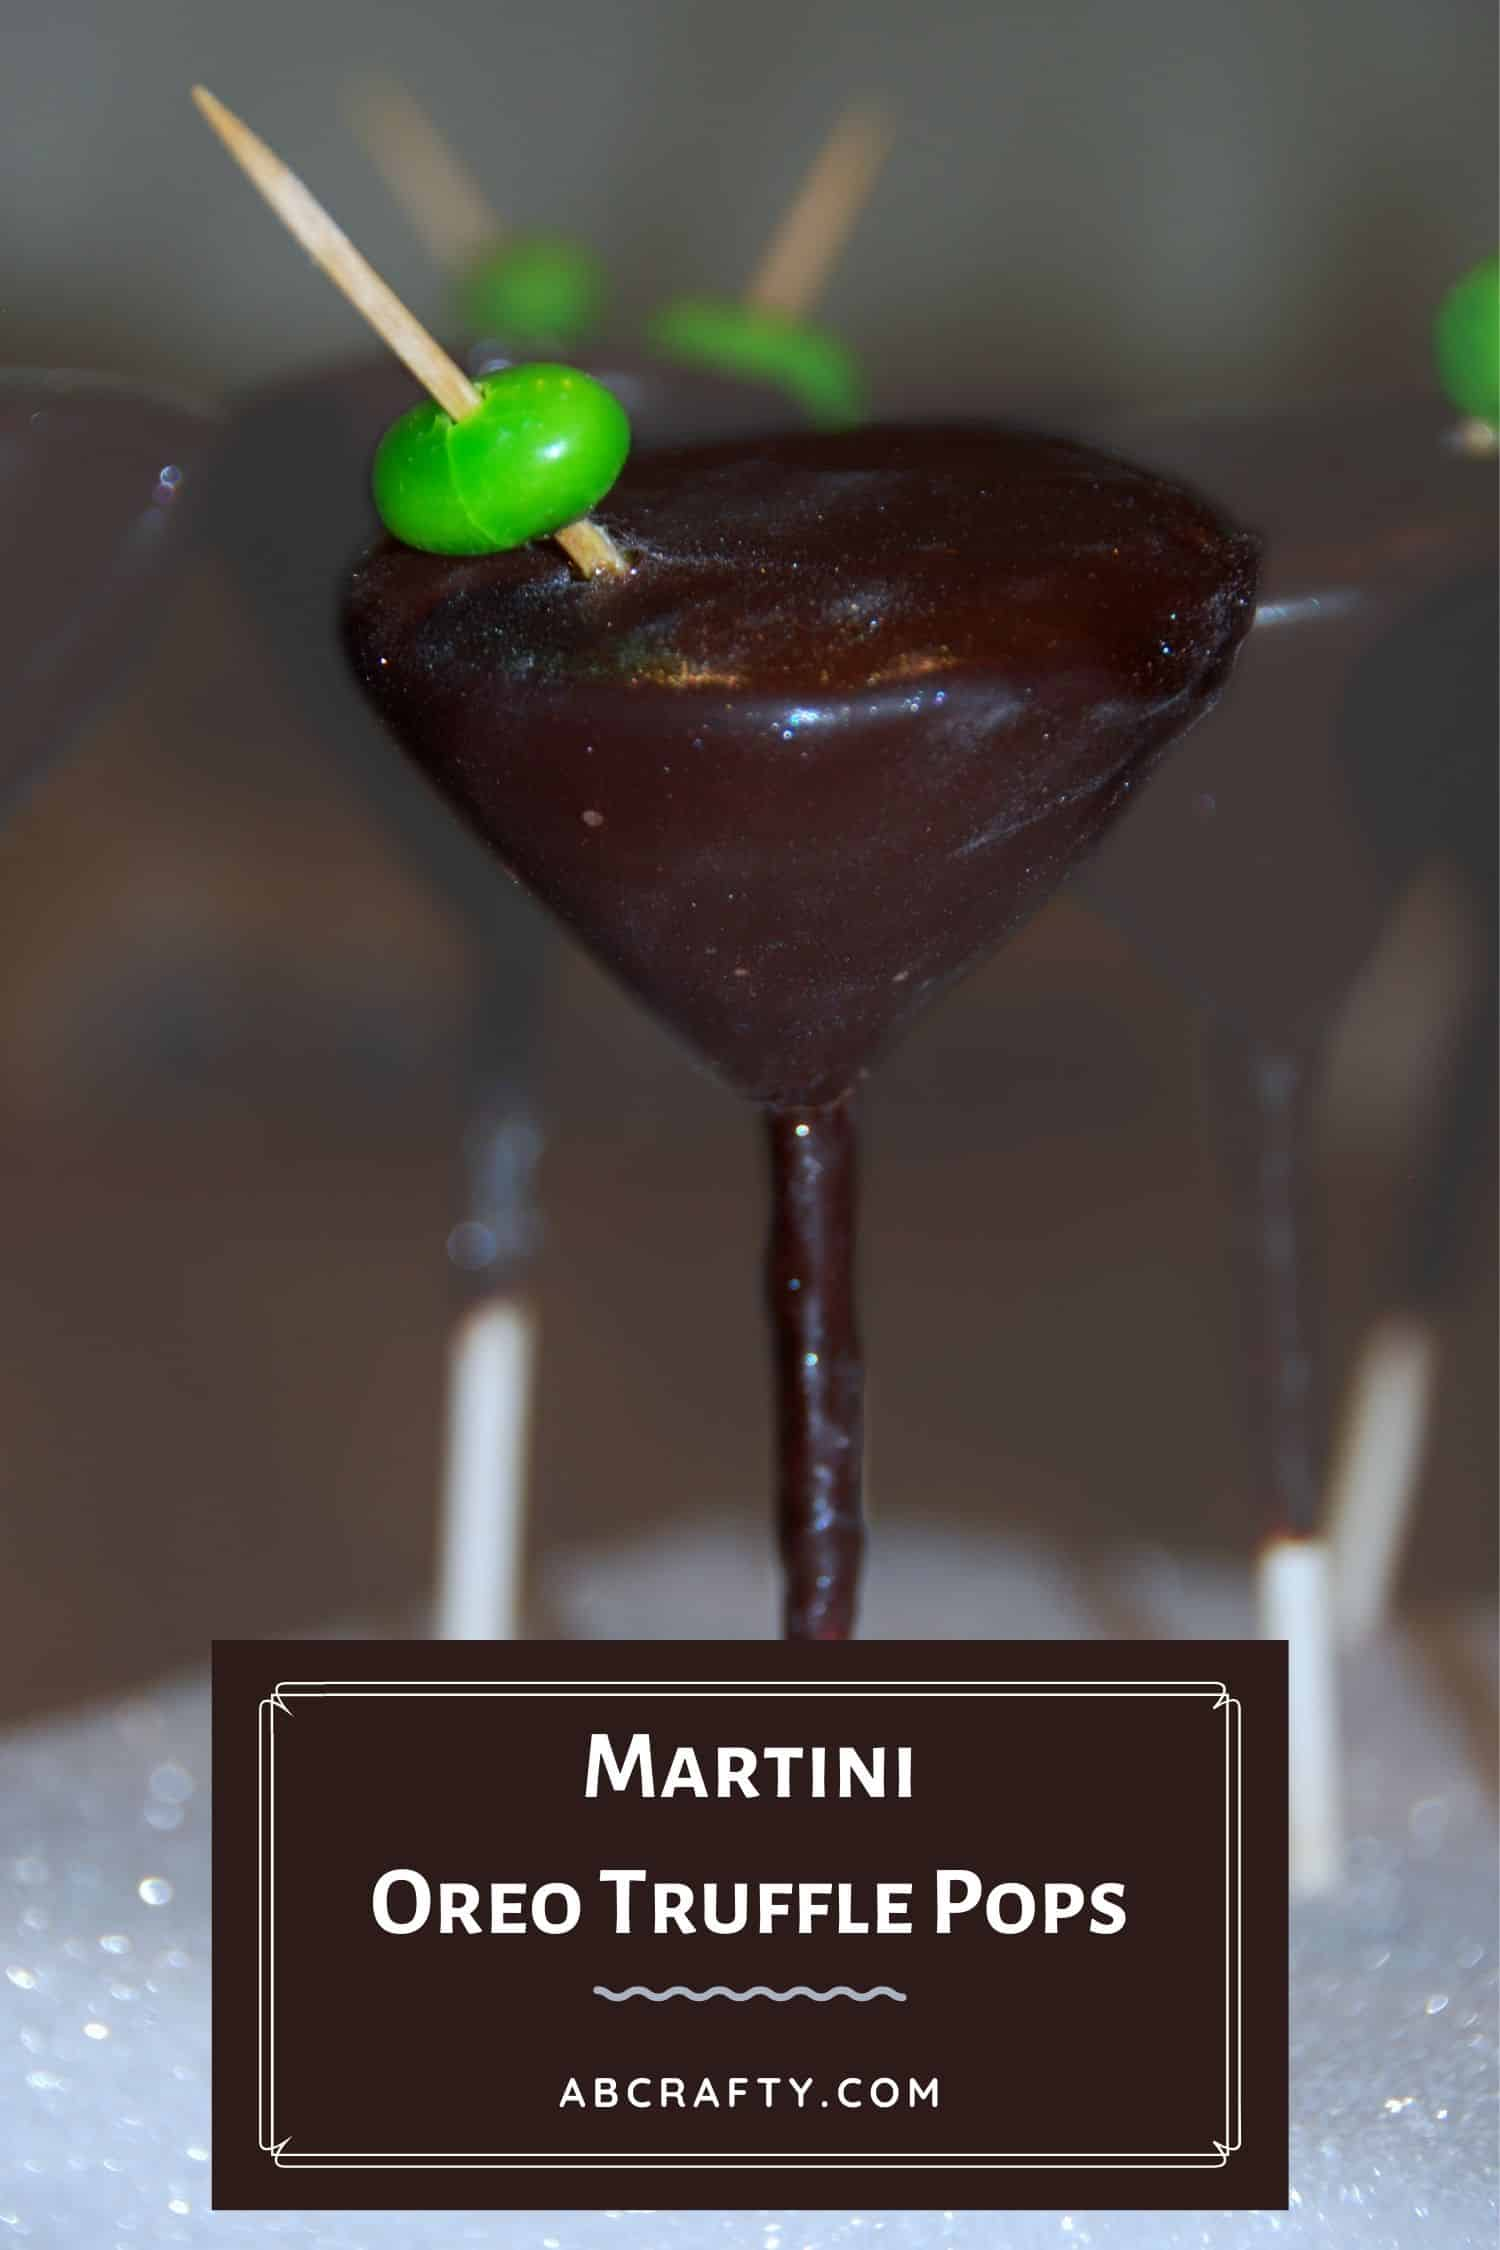 Martini glass cake pop made of oreo balls. It's on a cake pop stick, covered in chocolate with a green jelly bean as the olive on a toothpick. Title reads 'martini oreo truffle pops, abcrafty.com'